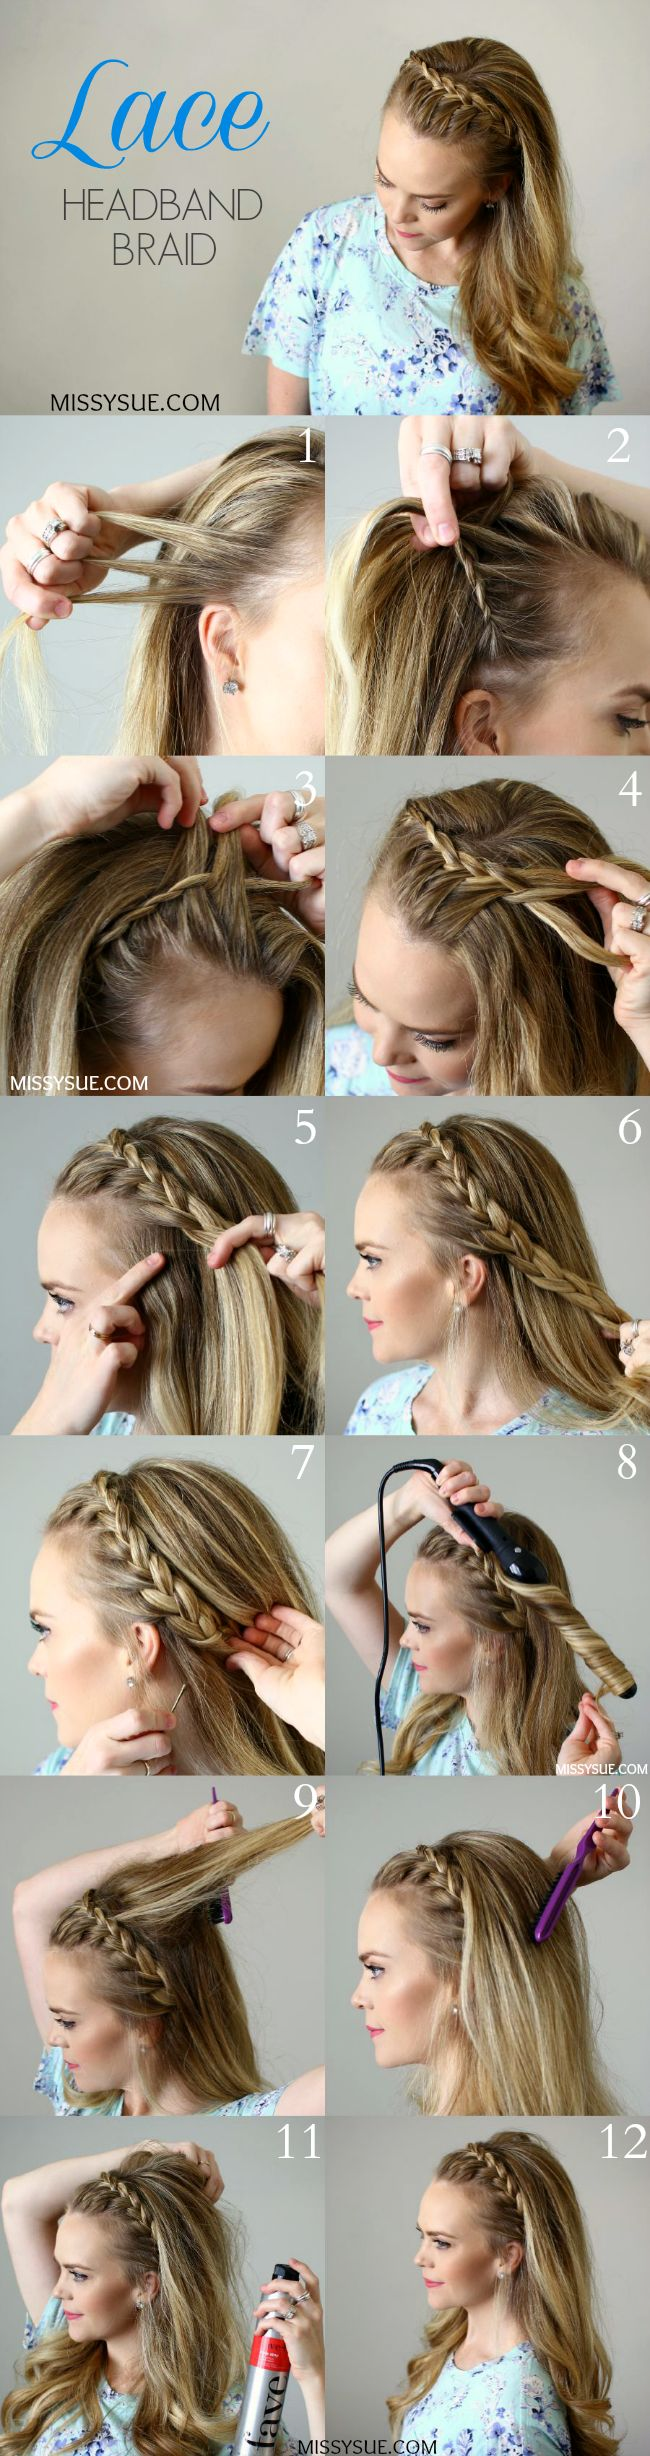 Admirable 1000 Ideas About Braided Hairstyles Tutorials On Pinterest Hairstyles For Women Draintrainus